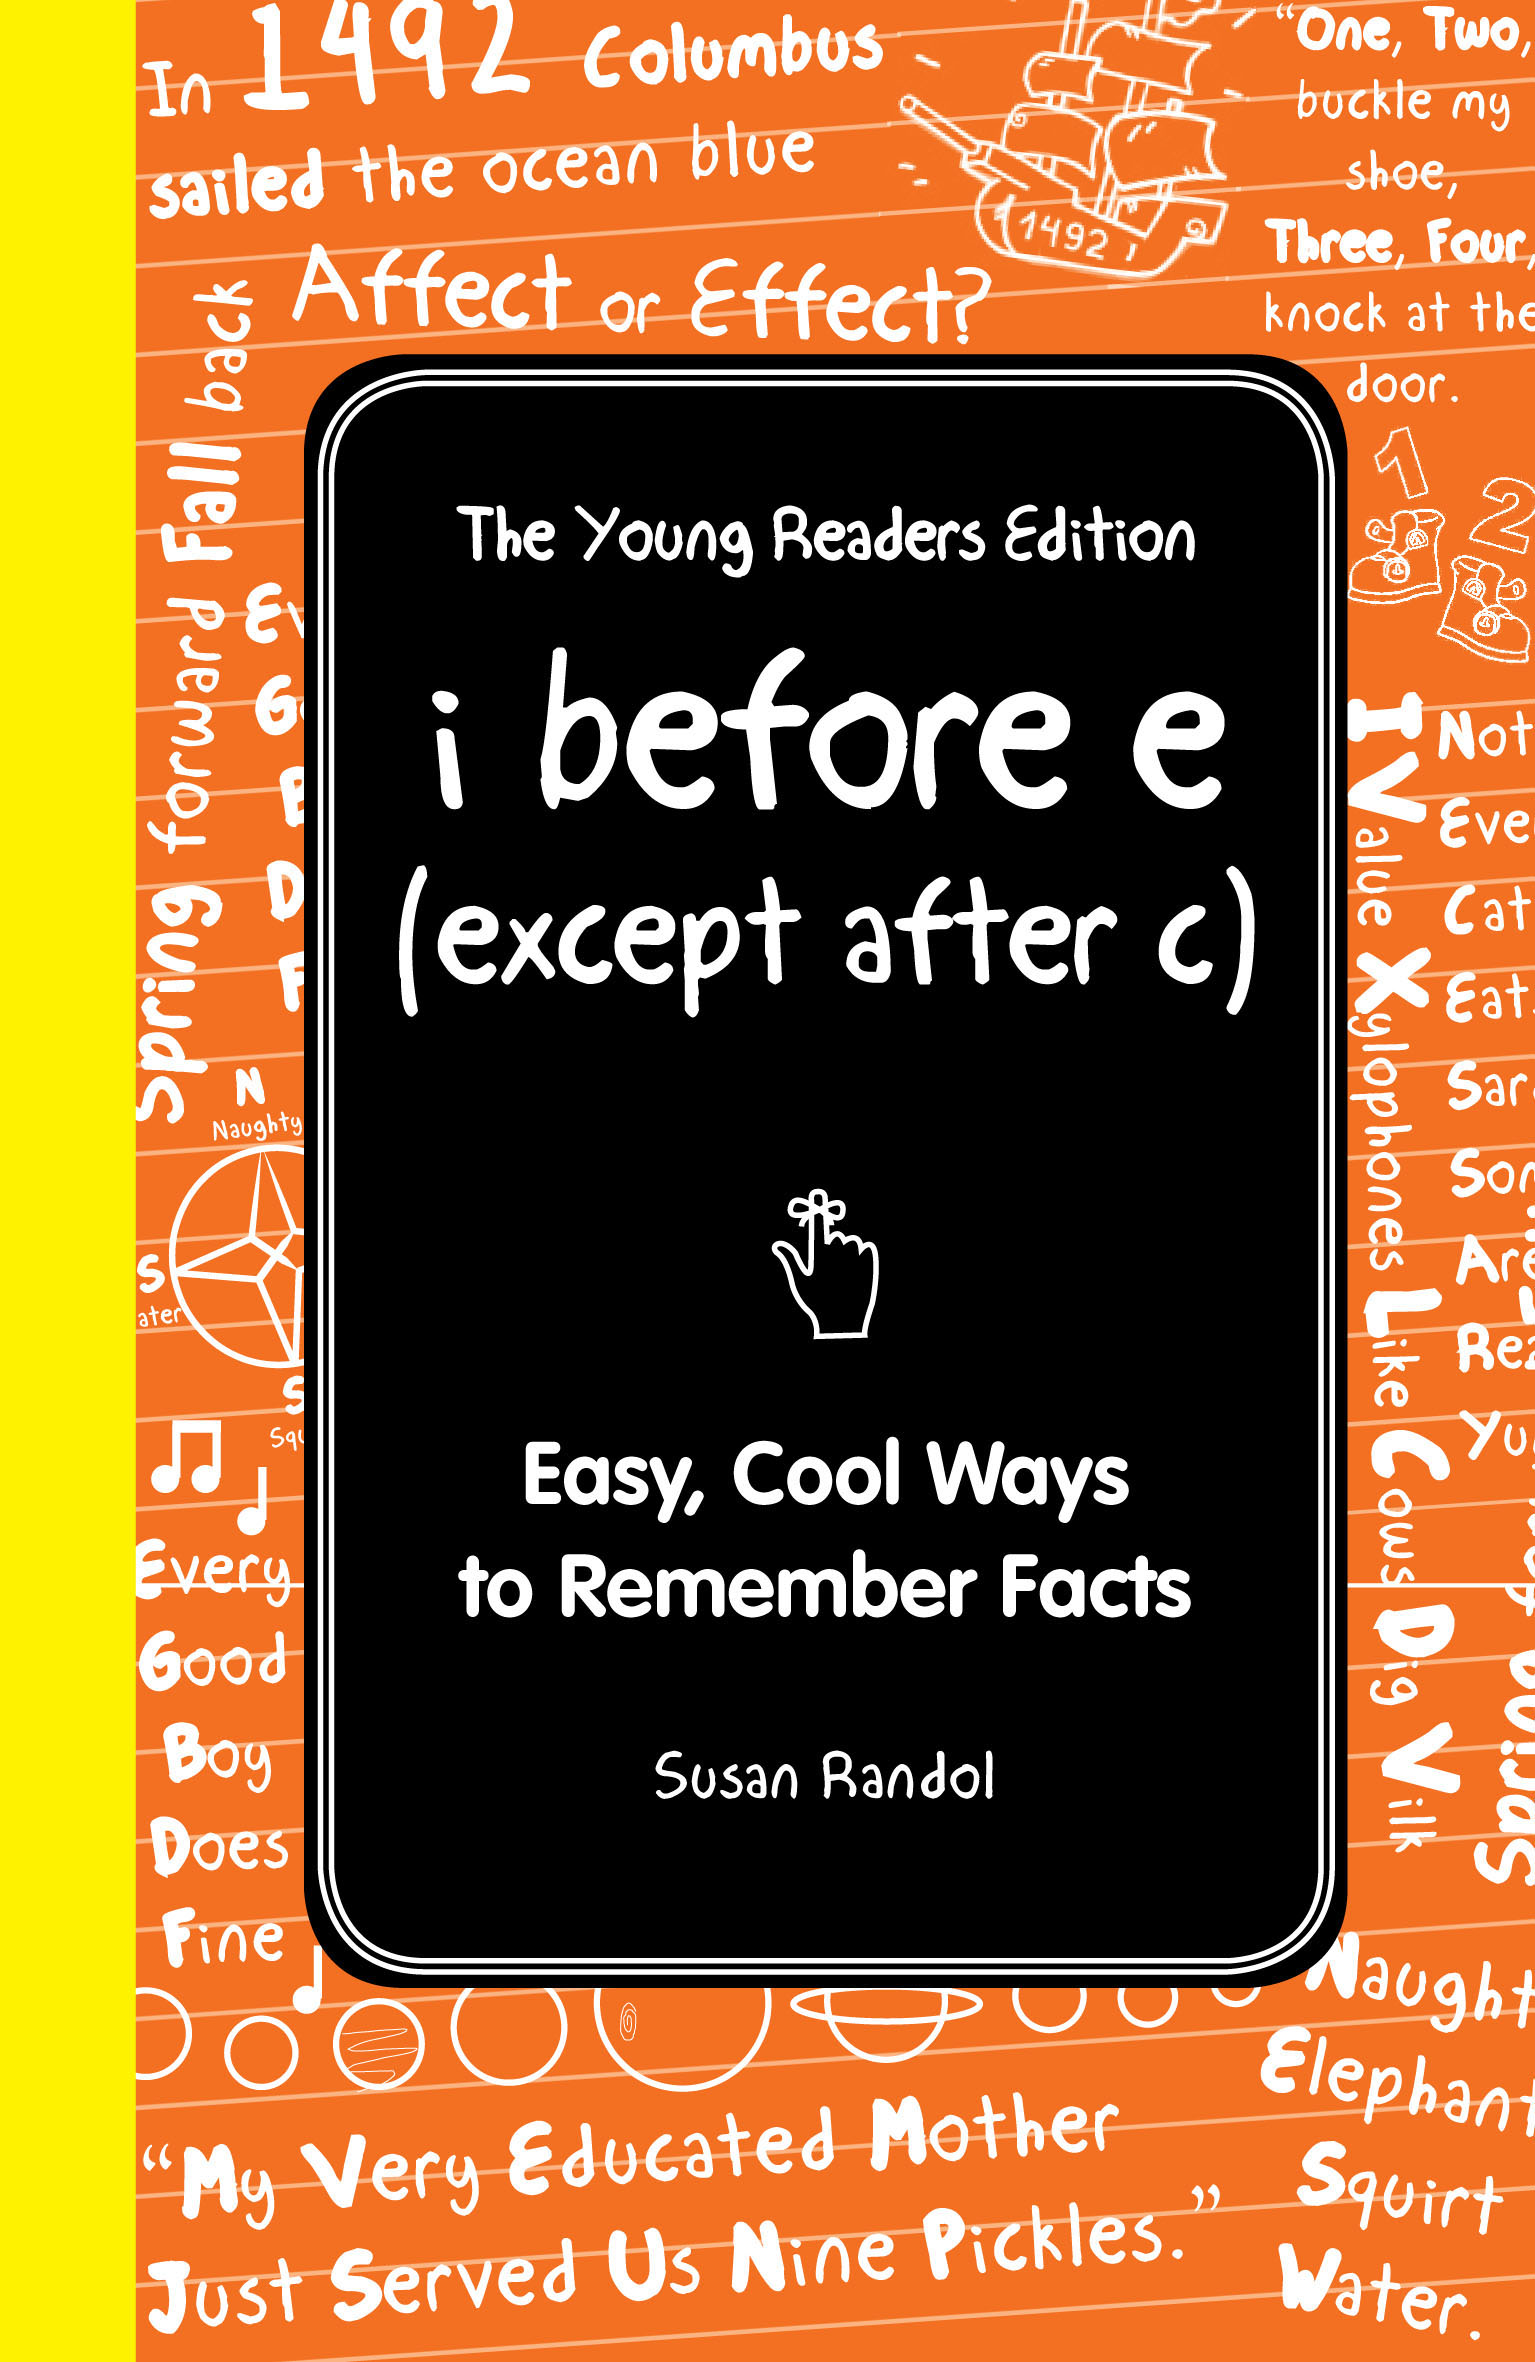 I Before E Except After C The Young Readers Edition